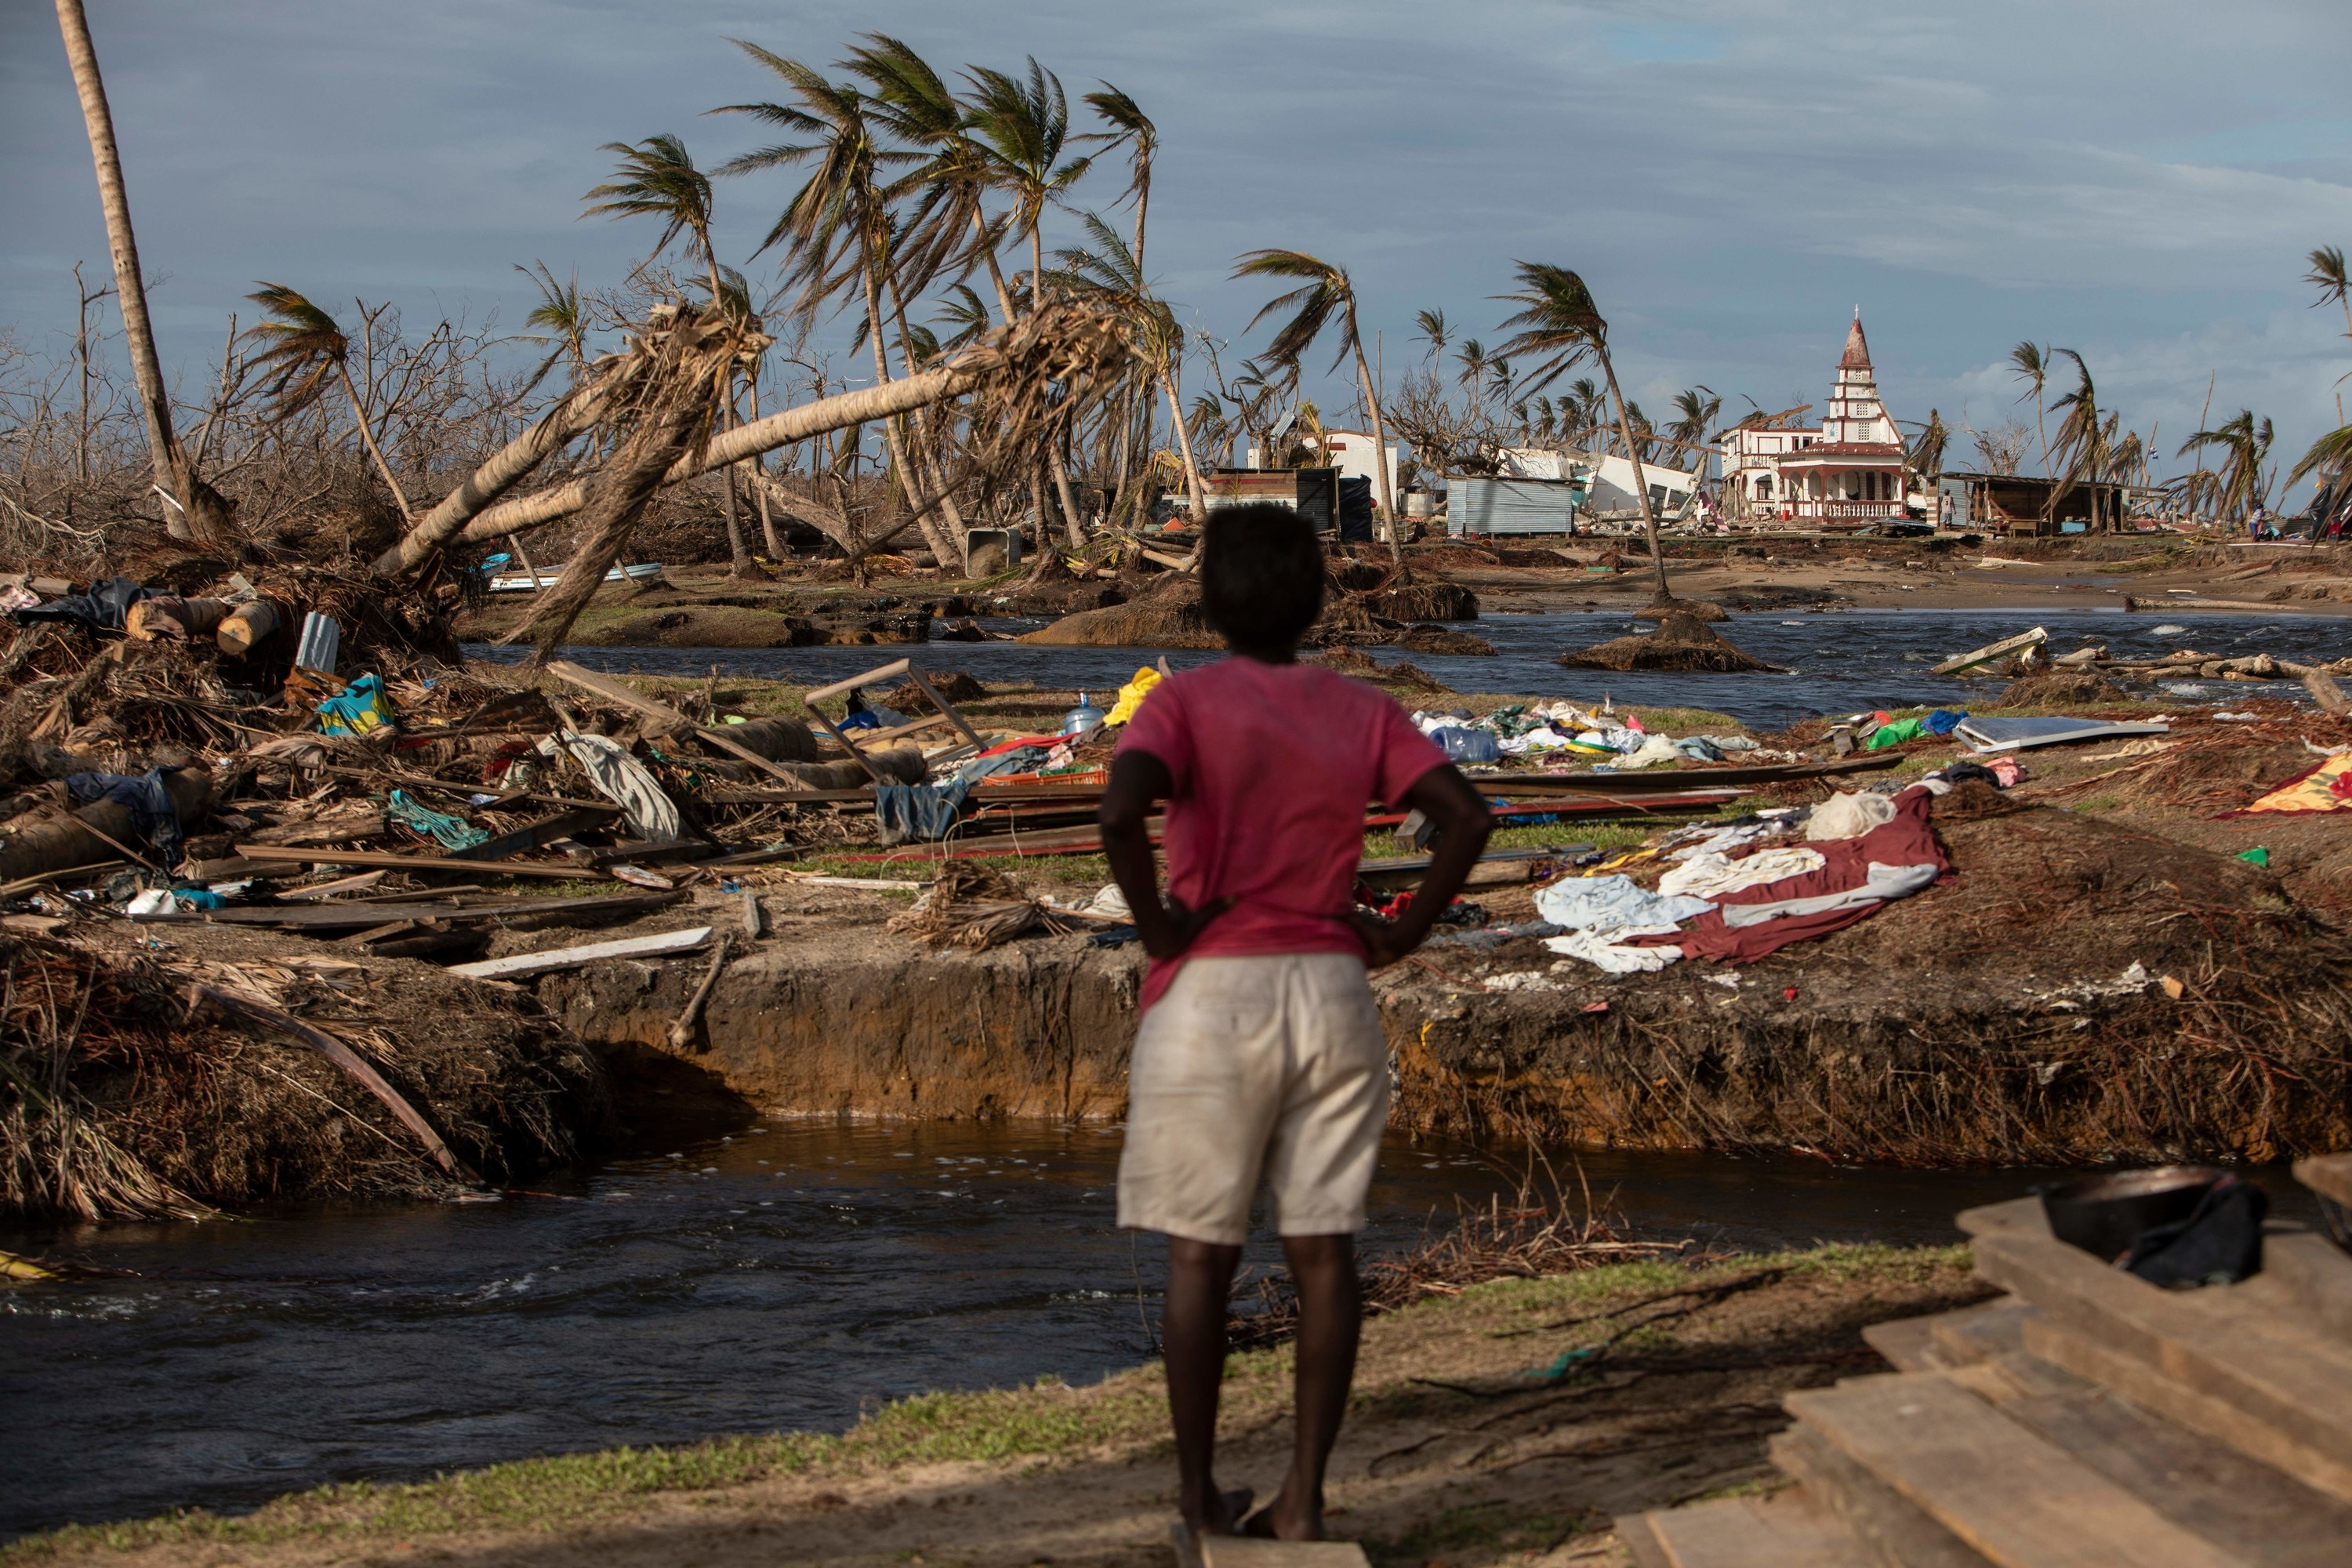 A woman in the foreground surveys hurricane wreckage including fallen palm trees and flattened homes